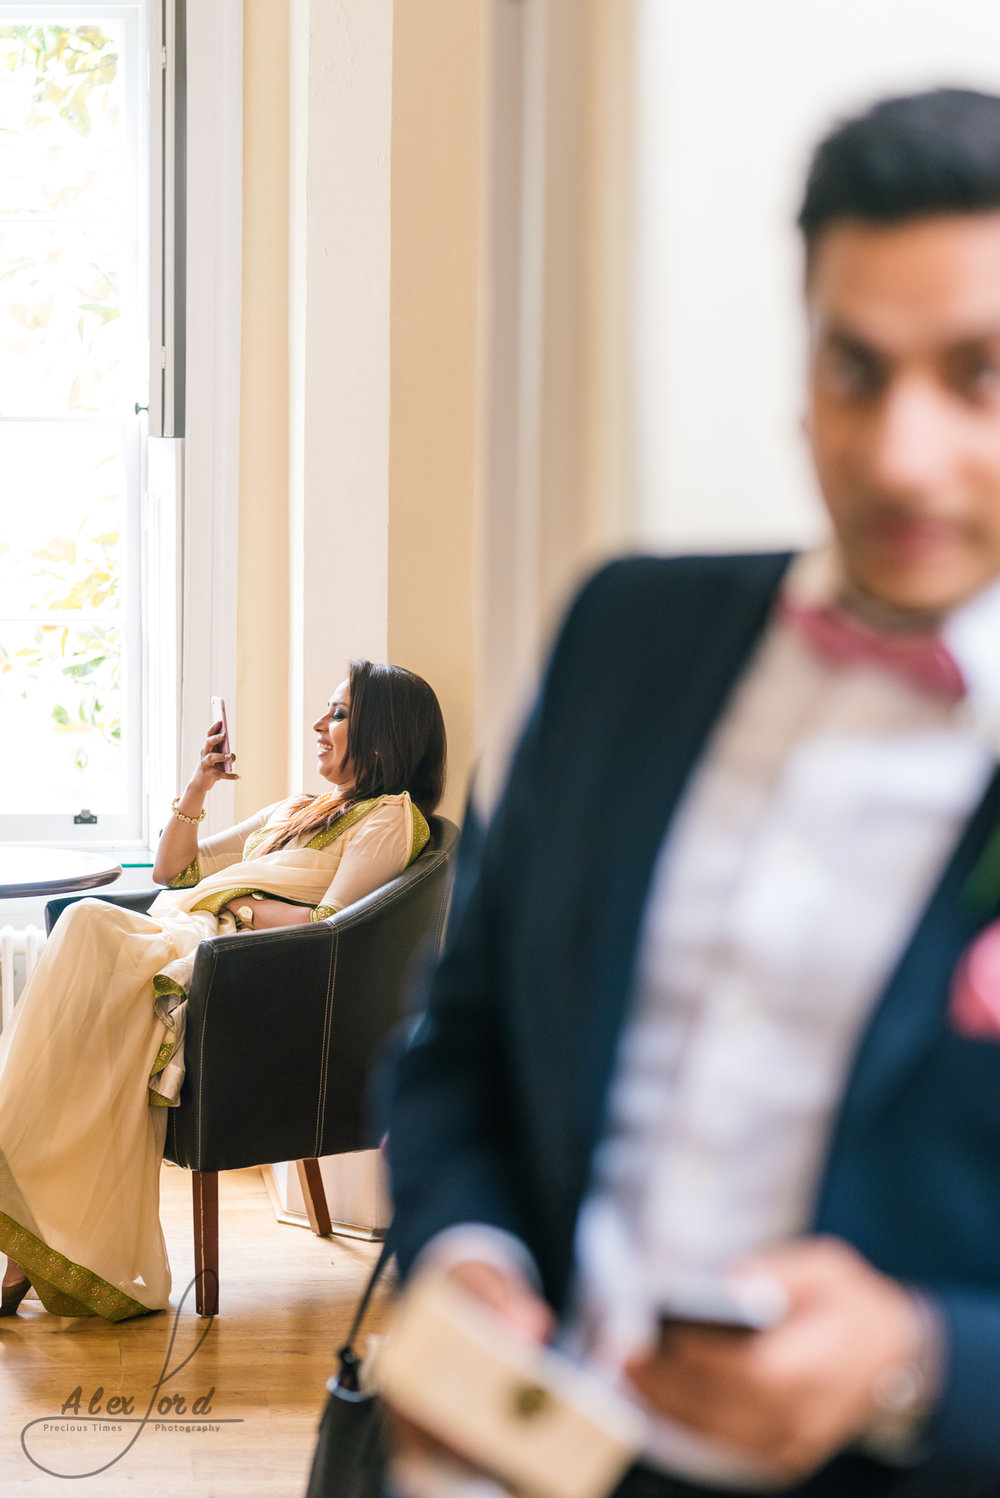 Last wedding guest dressed in gold sits on a chair in a sunlit room, partly hidden needing a man in a suit in the foreground